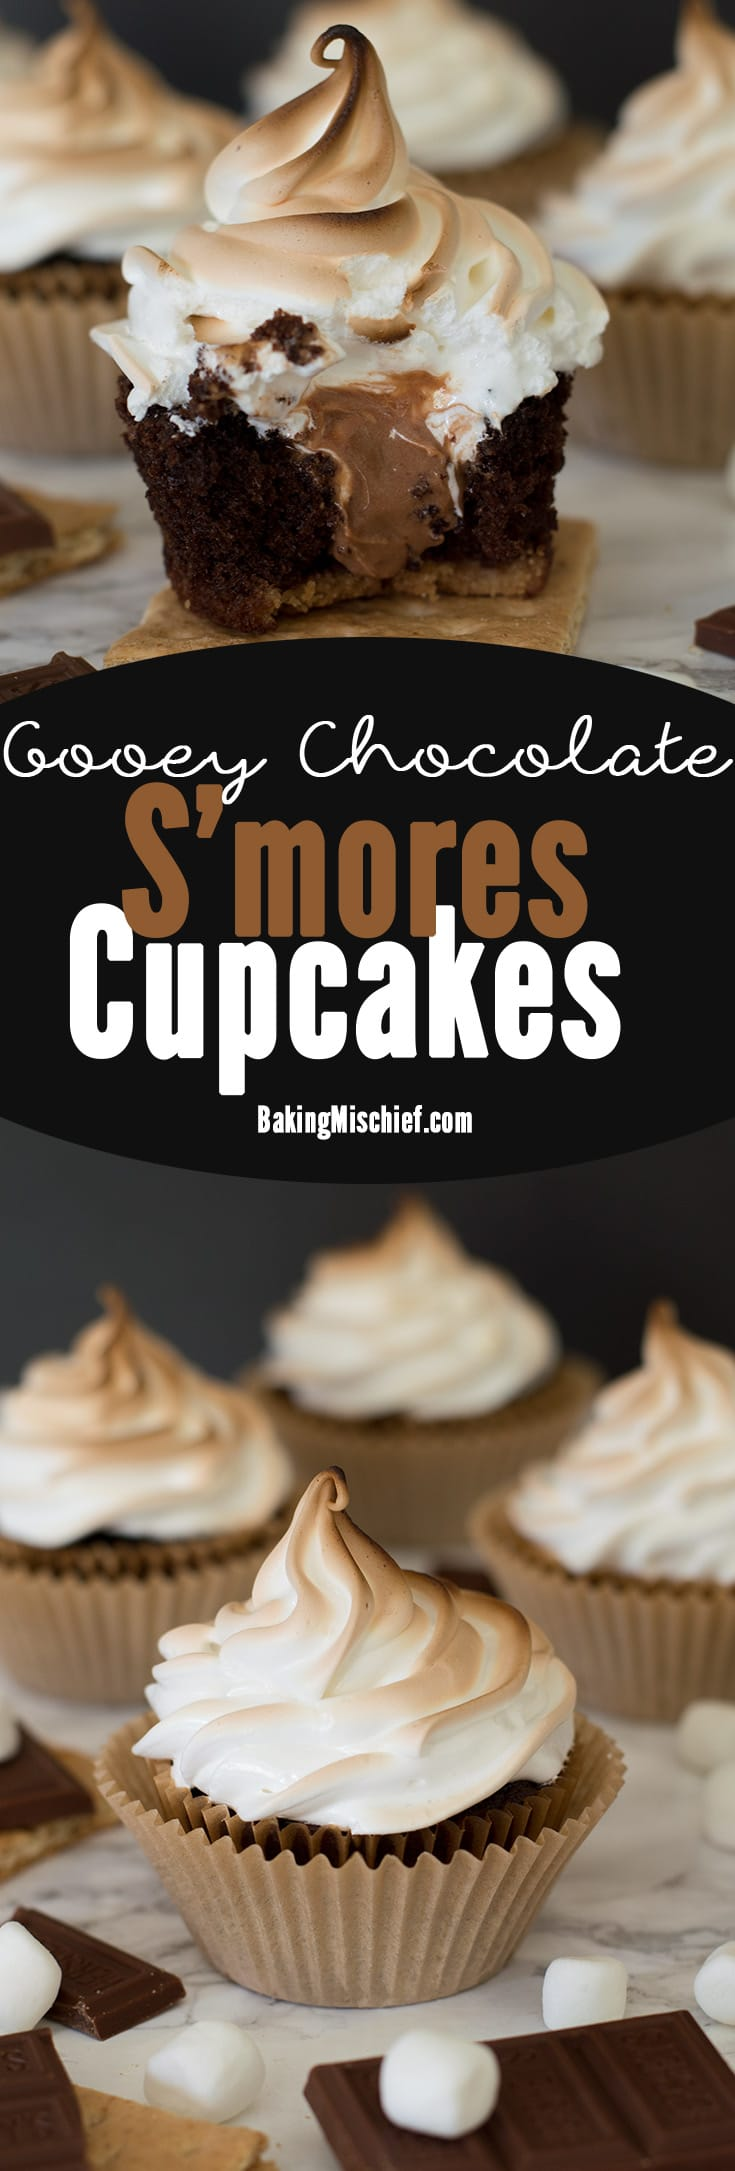 How To Make Gooey Chocolate Smores Cupcakes